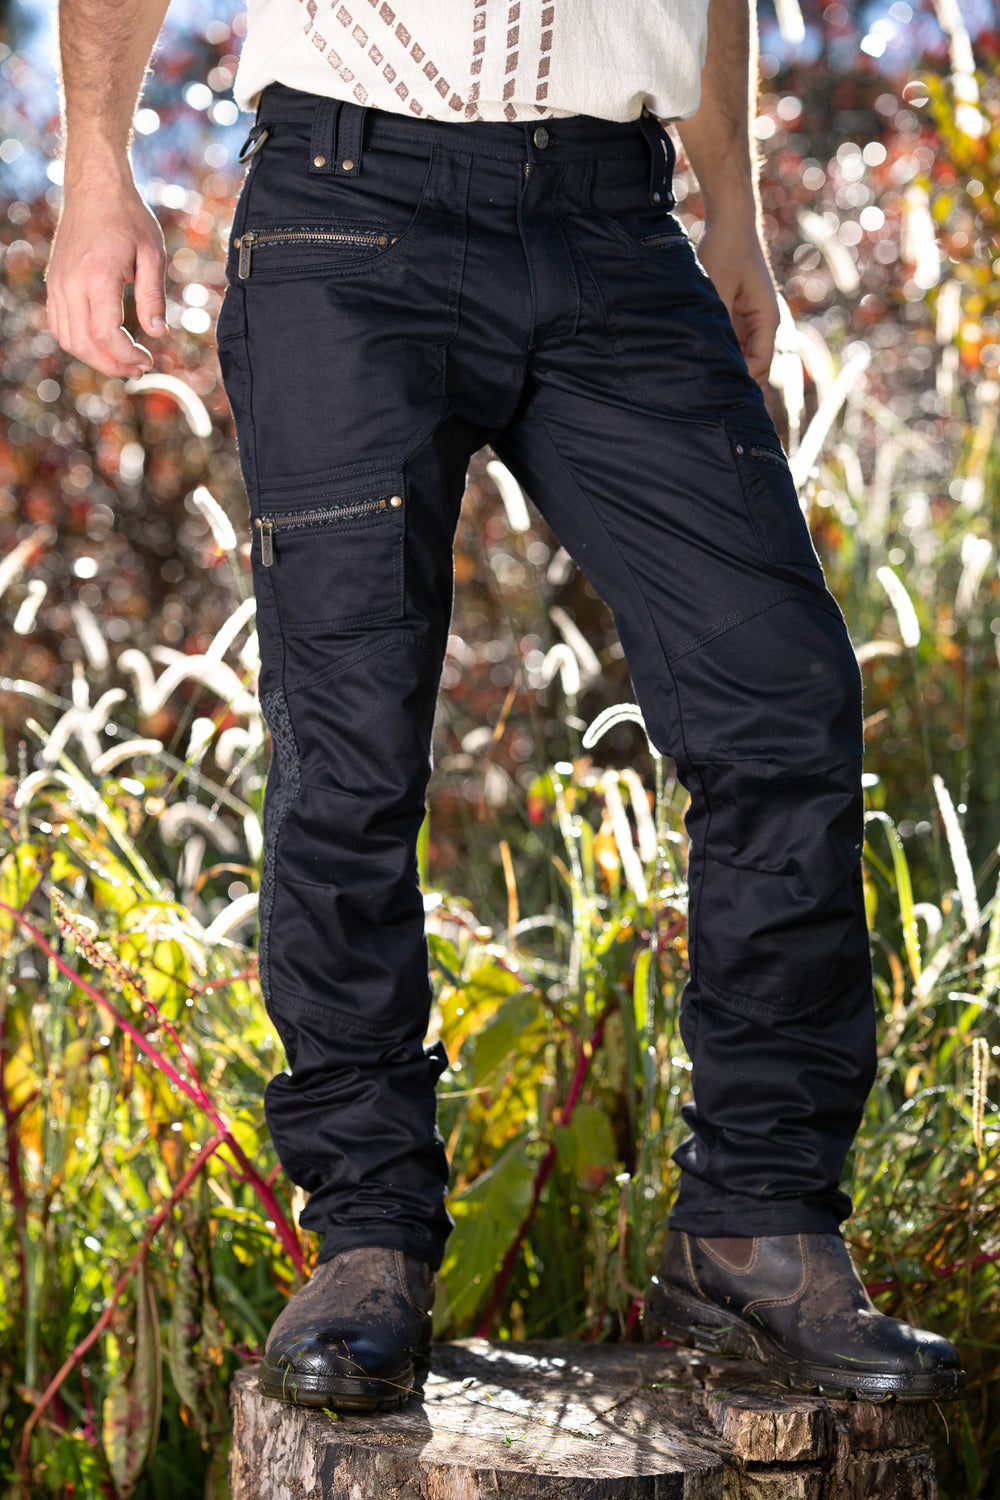 Osmosis Black Cargo Mens Pants Long Utility Tactical Functional Many Pockets Festival Tribal Gear Rave Comfortable Burning Trousers AJJAYA